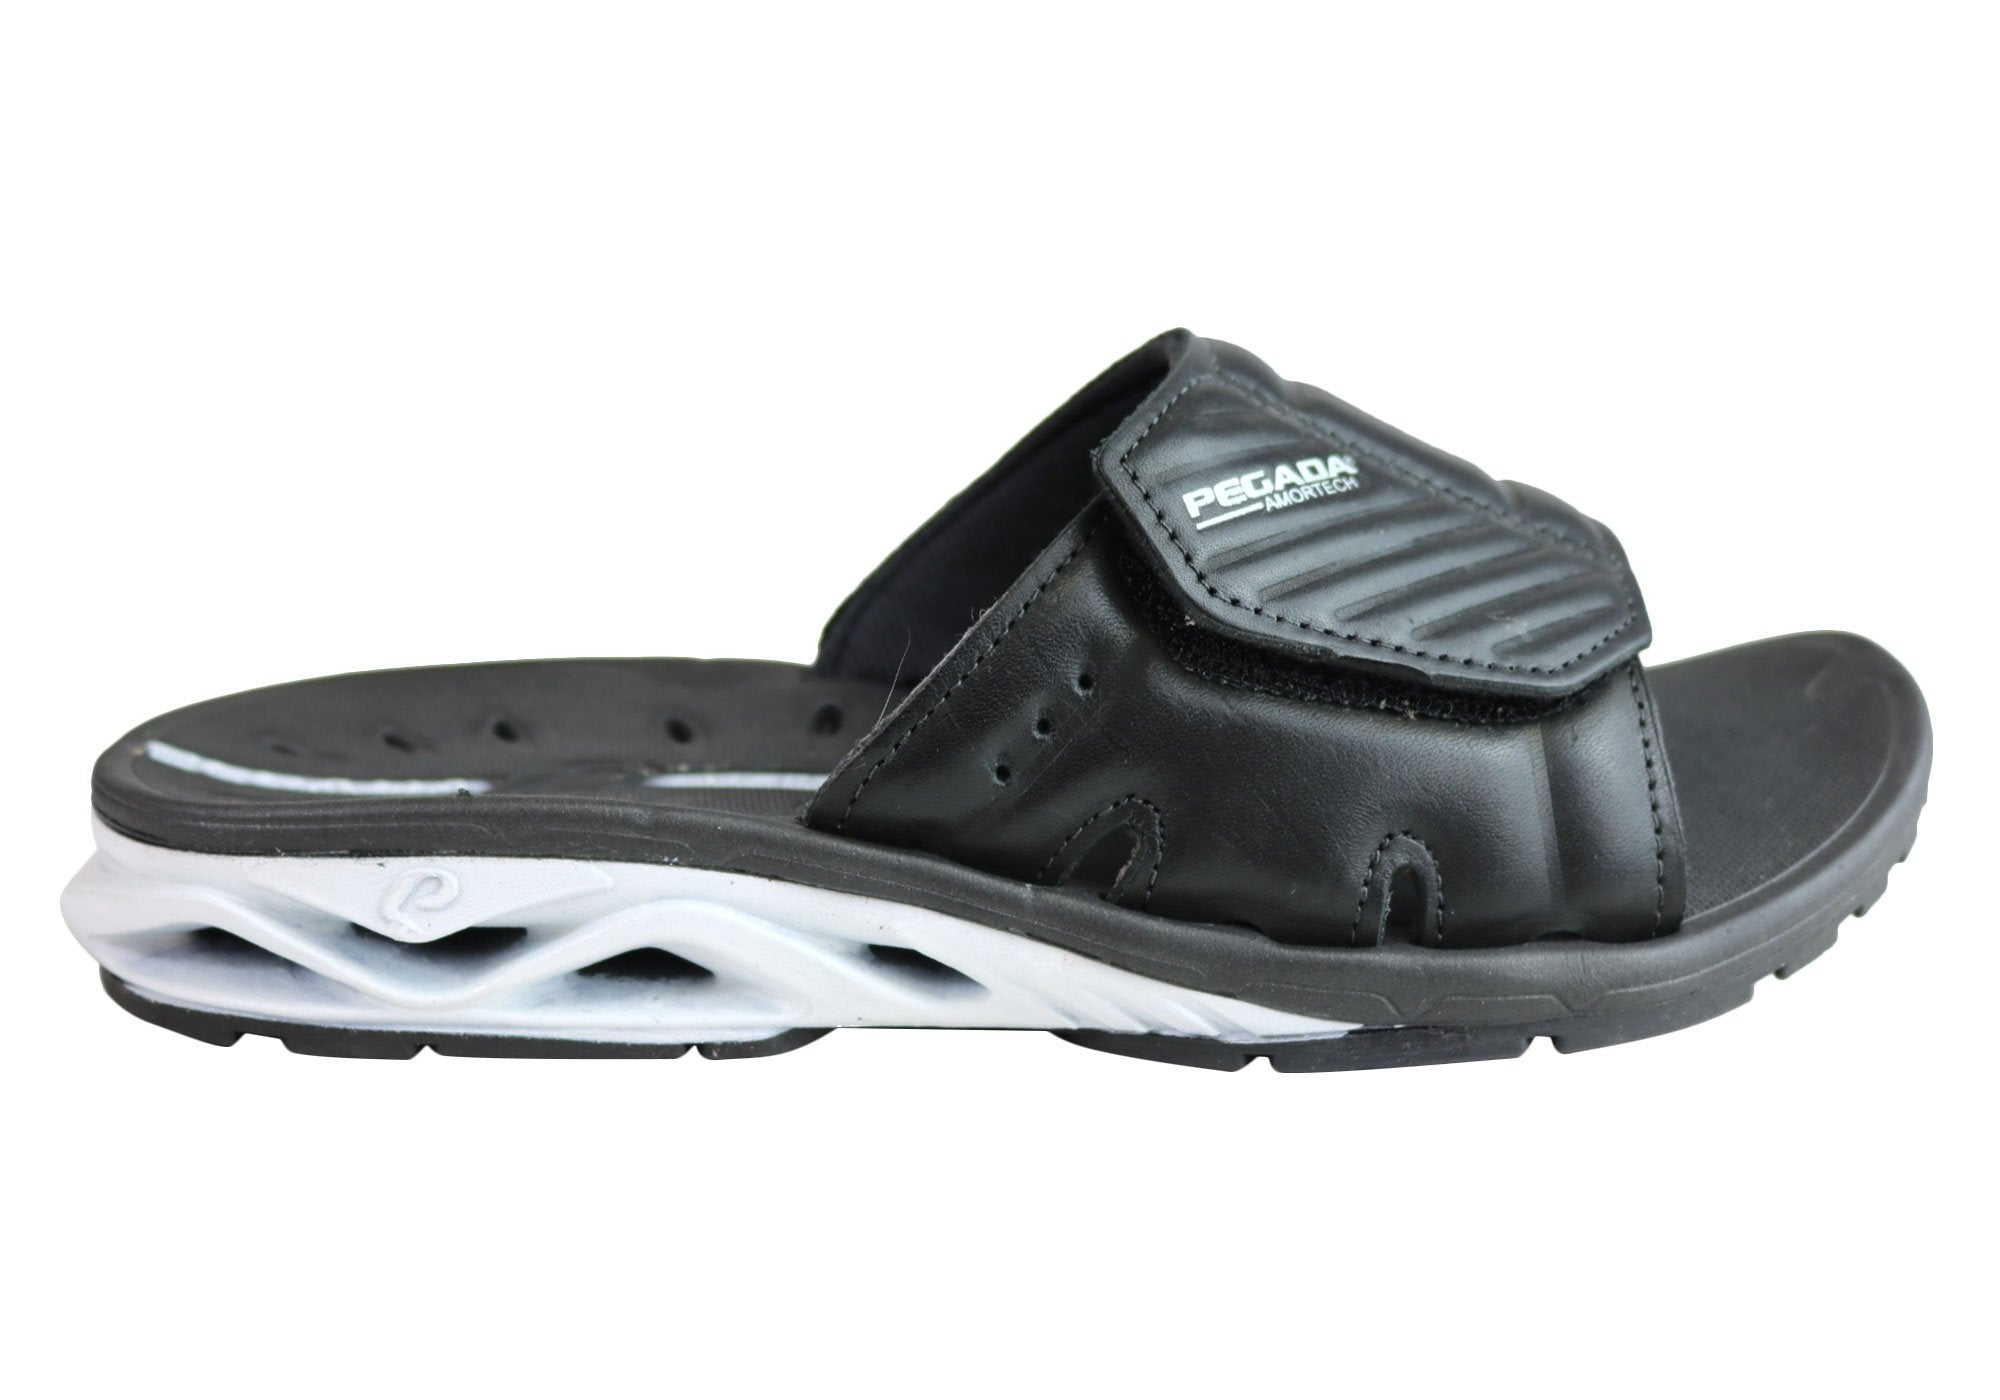 85276b789030 Pegada Ray Mens Comfort Cushioned Sports Slides Sandals Made In Brazil